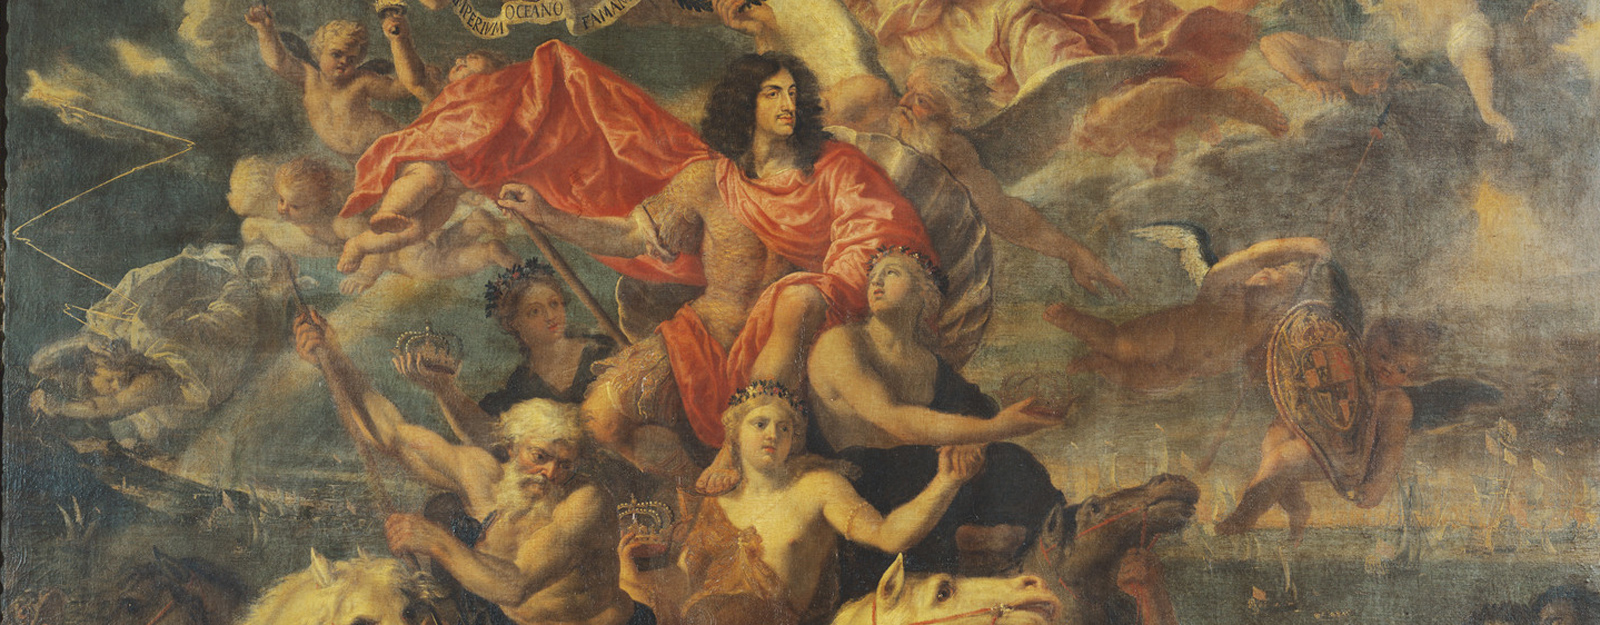 The Sea Triumph of Charles II by Antonio Verrio